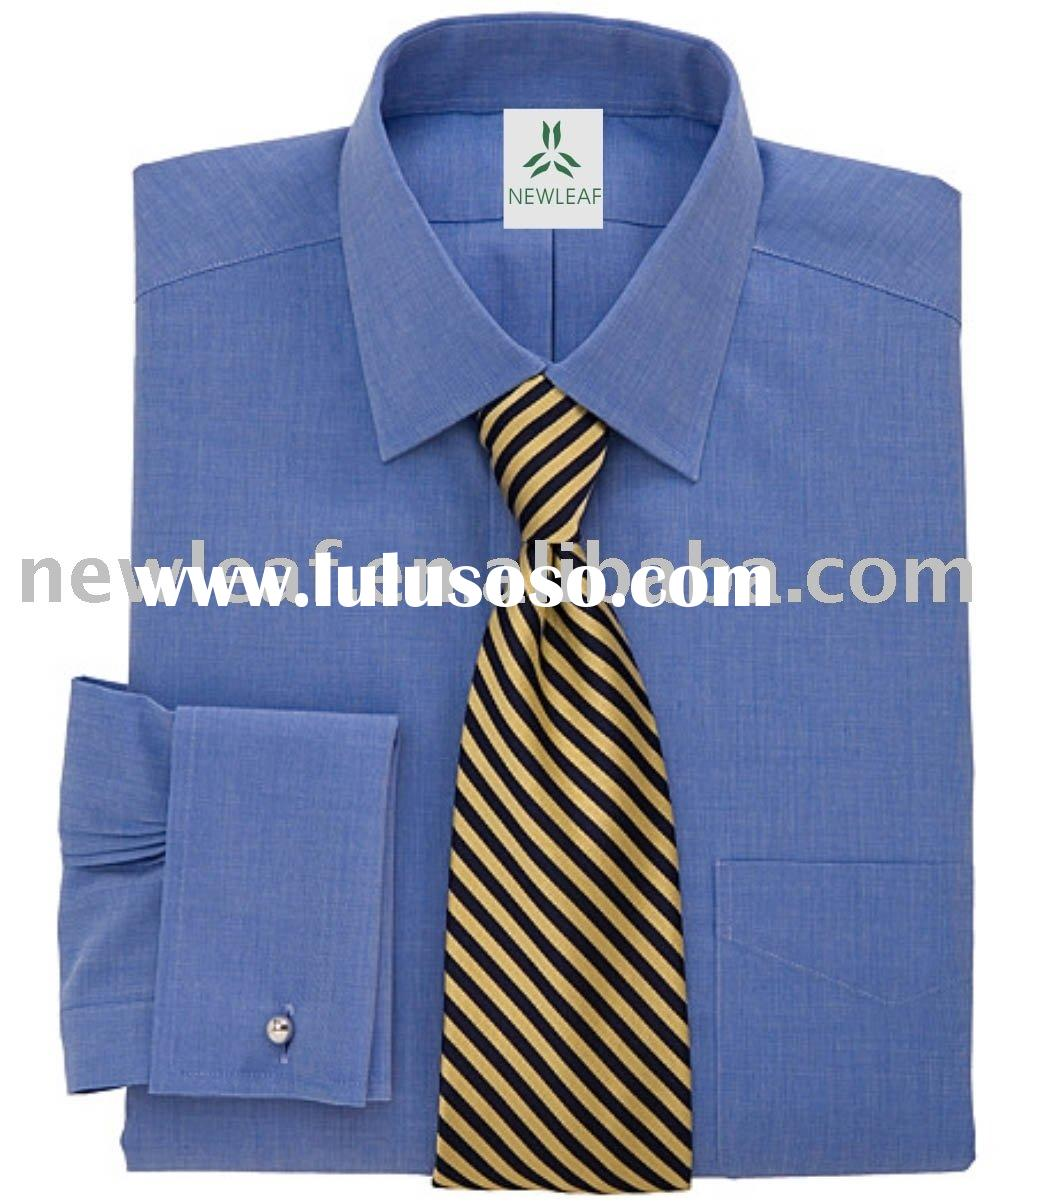 French Cuff Dress Shirt For Sale Price China